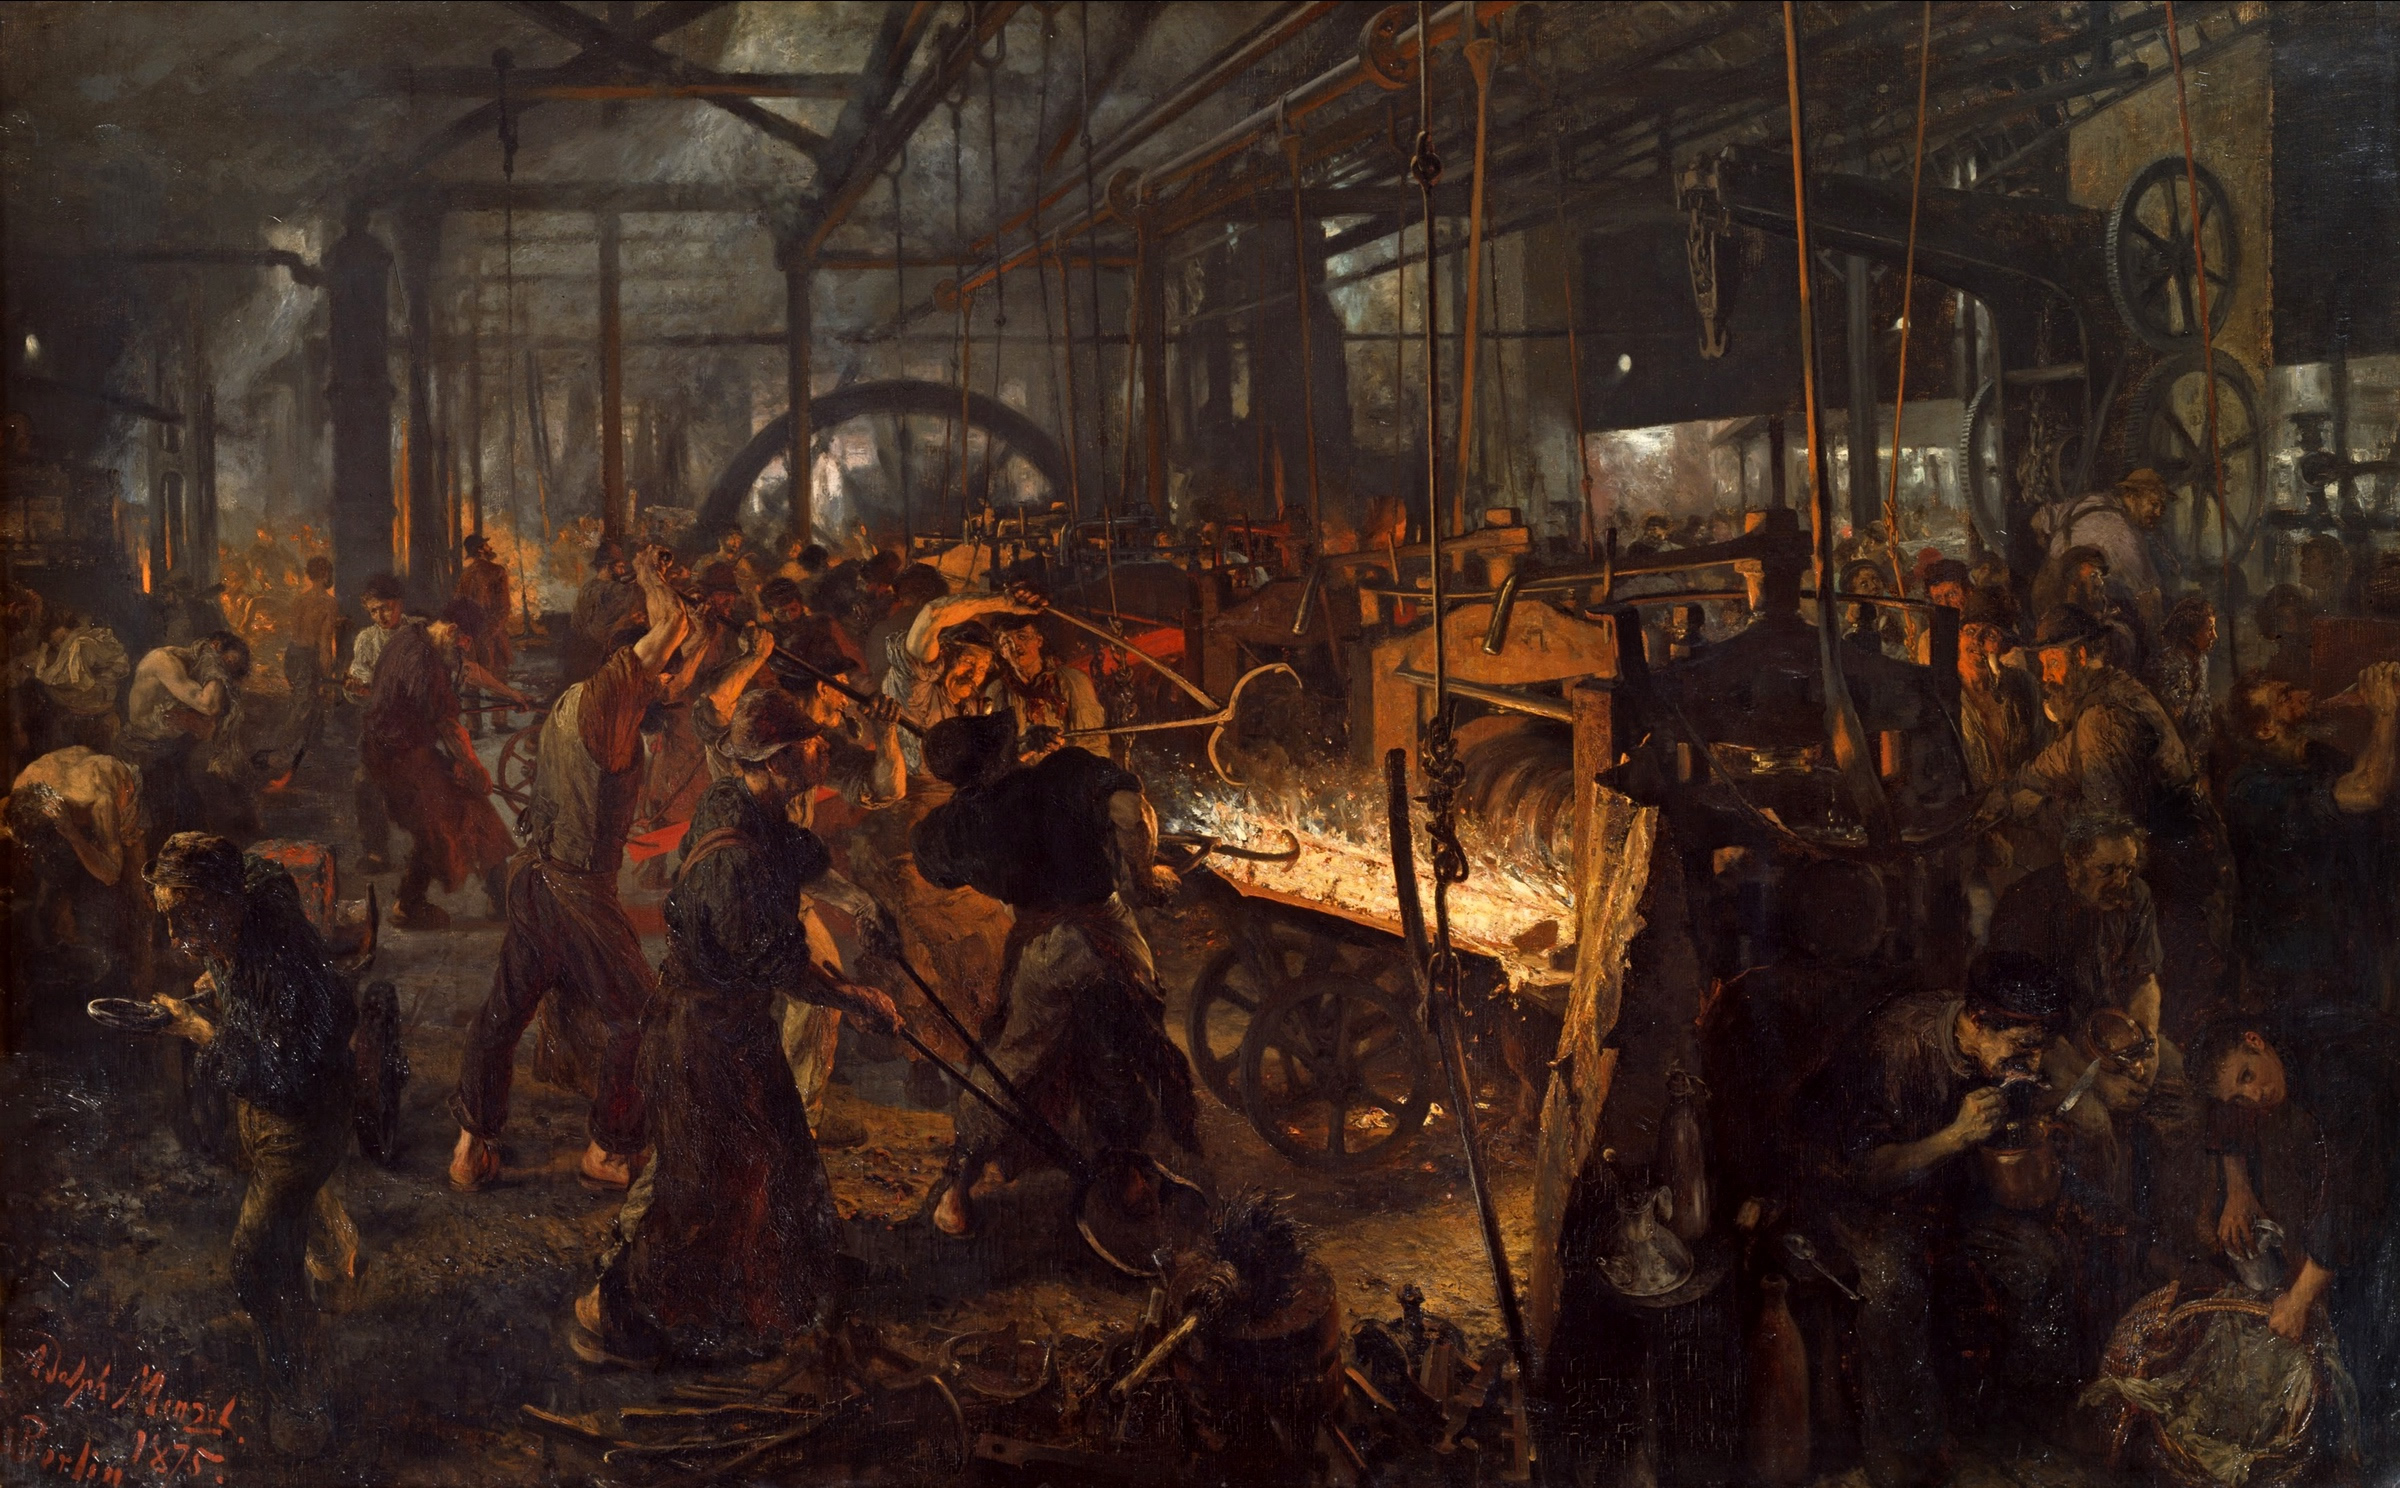 painting of a factory during Britain's industrial revolution